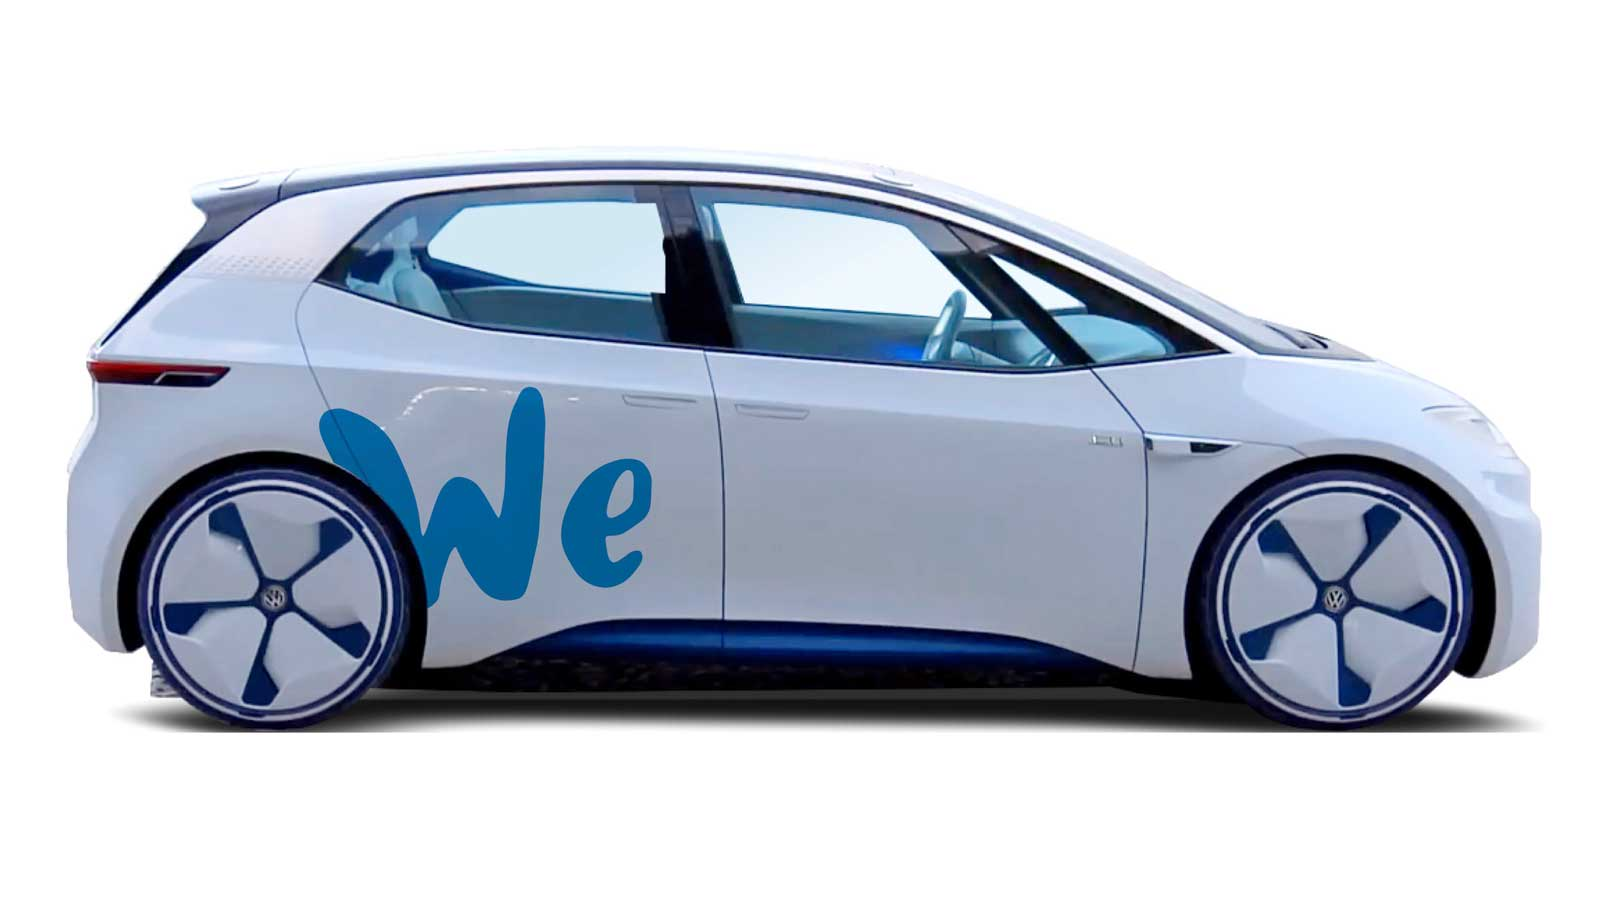 vw and renault promise electric car sharing services. Black Bedroom Furniture Sets. Home Design Ideas